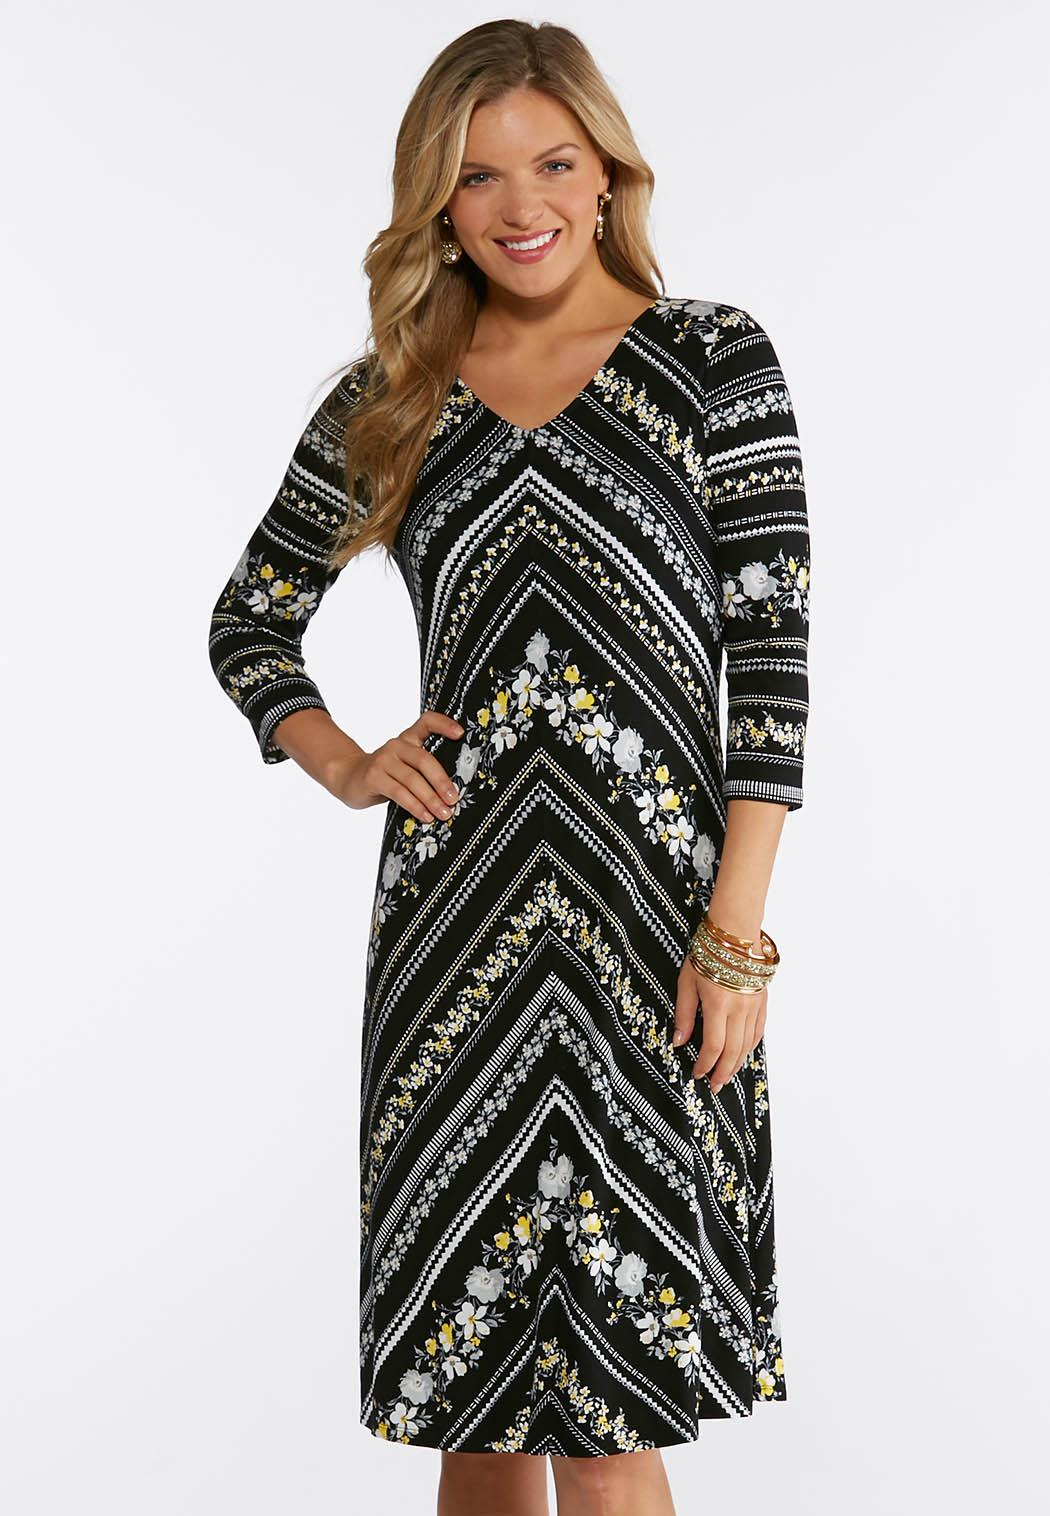 Plus Size Stretch Floral Chevron Dress A-line & Swing Cato Fashions